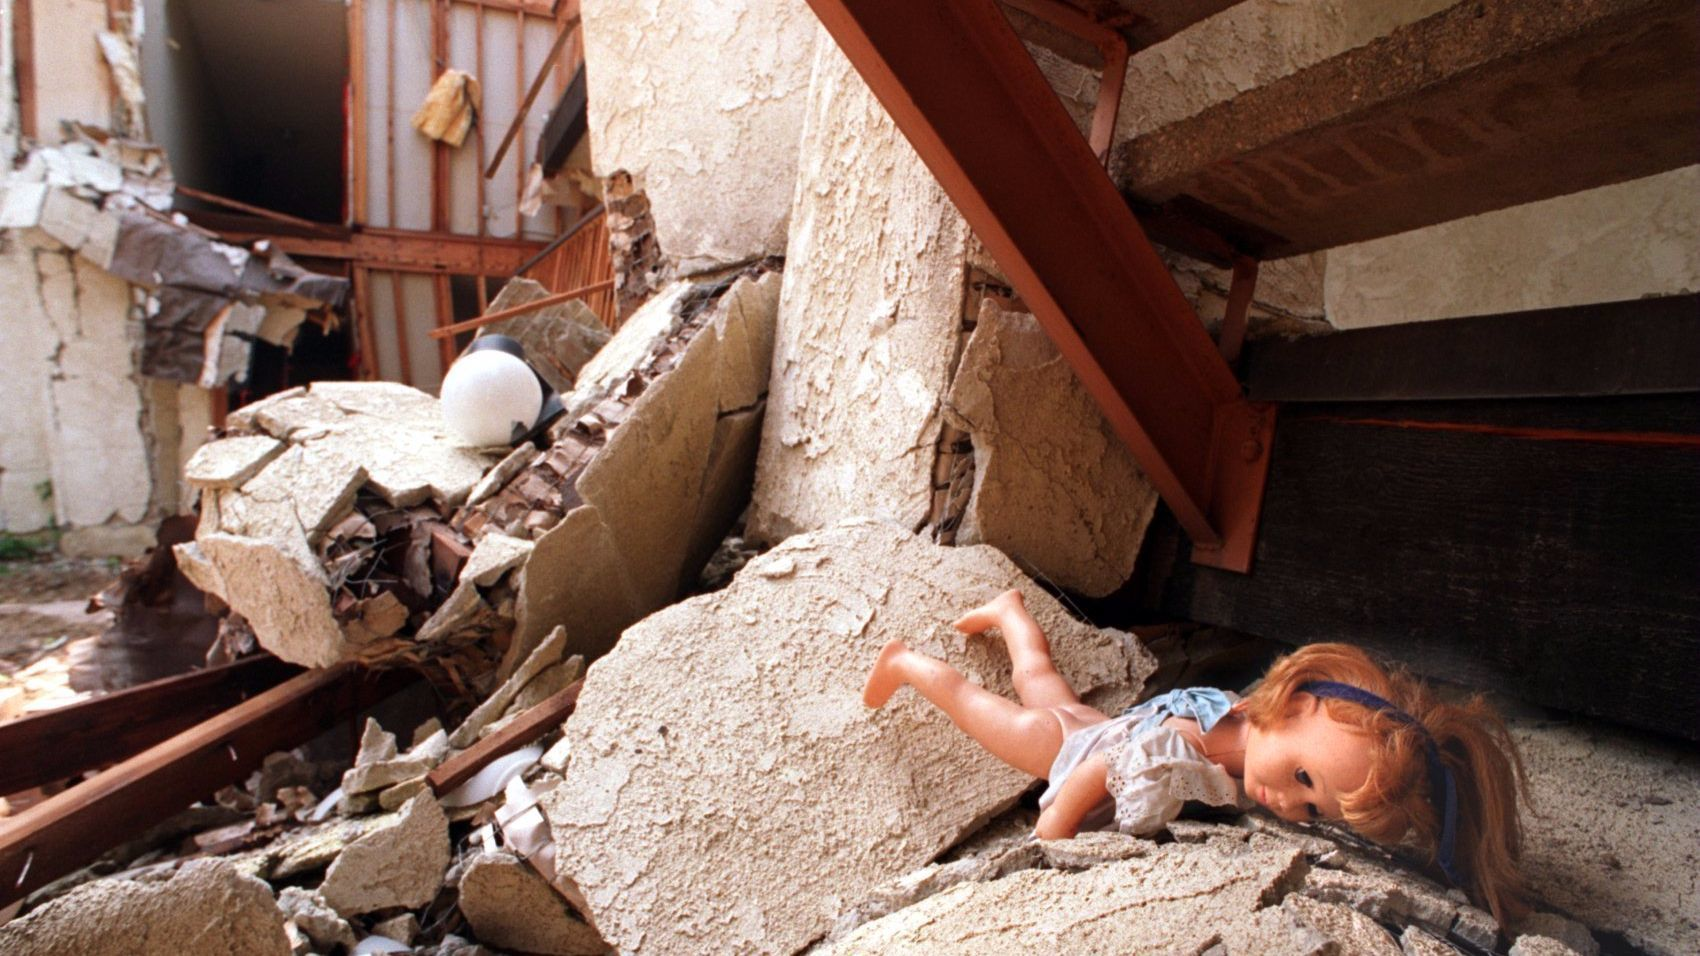 A doll lies in the rubble of the Northridge Meadows apartment, where 16 bodies were found after 1994 Northridge earthquake.